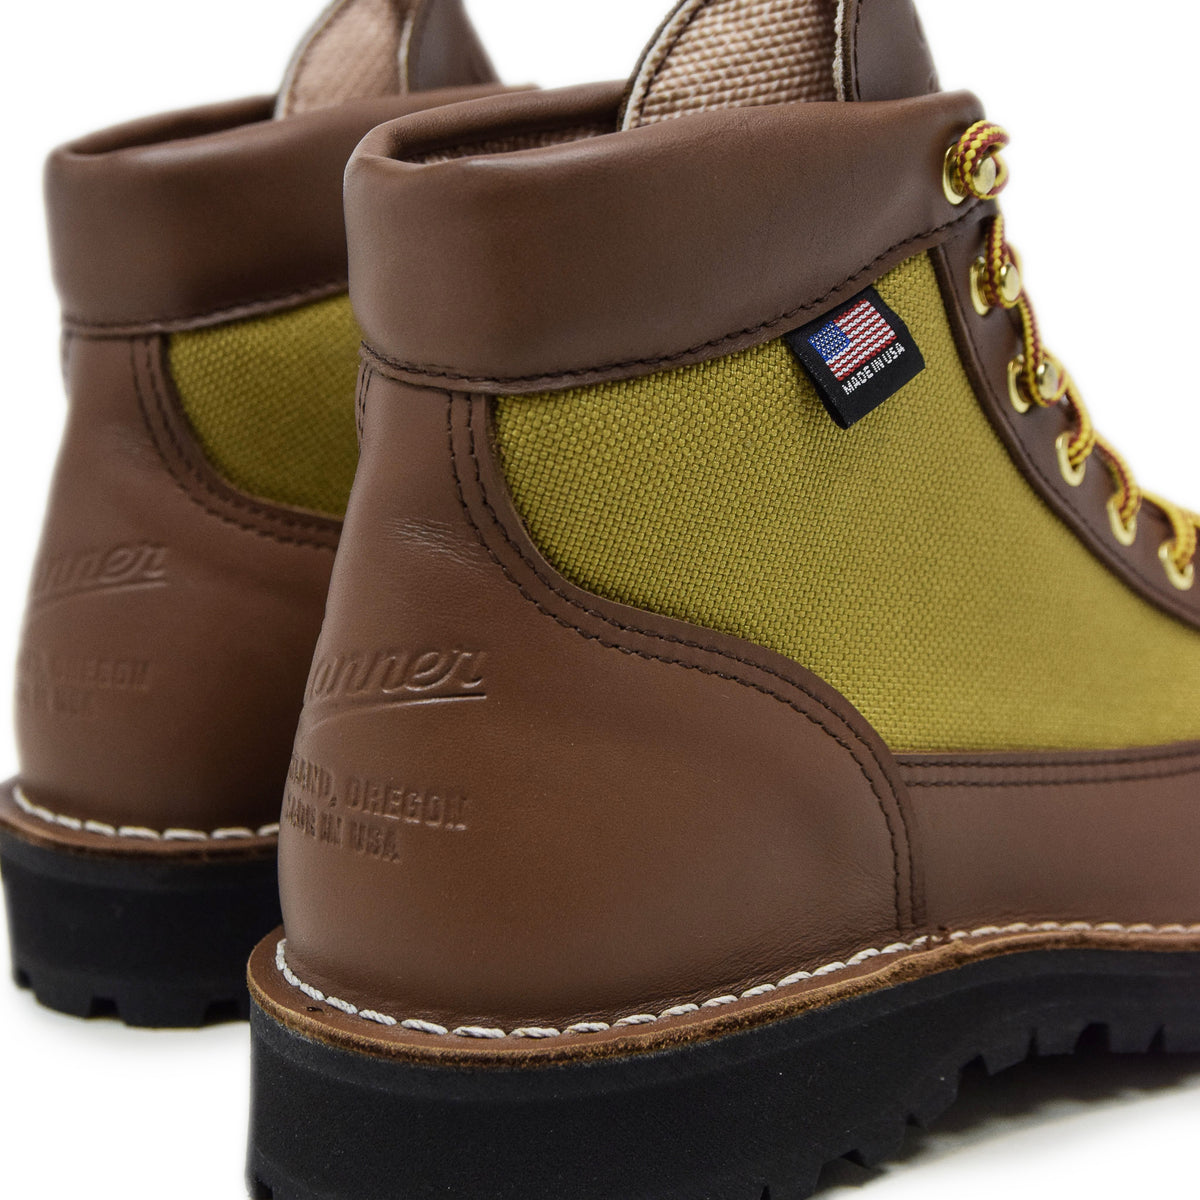 Danner Light Leather And Nylon Gore-Tex Boot Khaki Heel